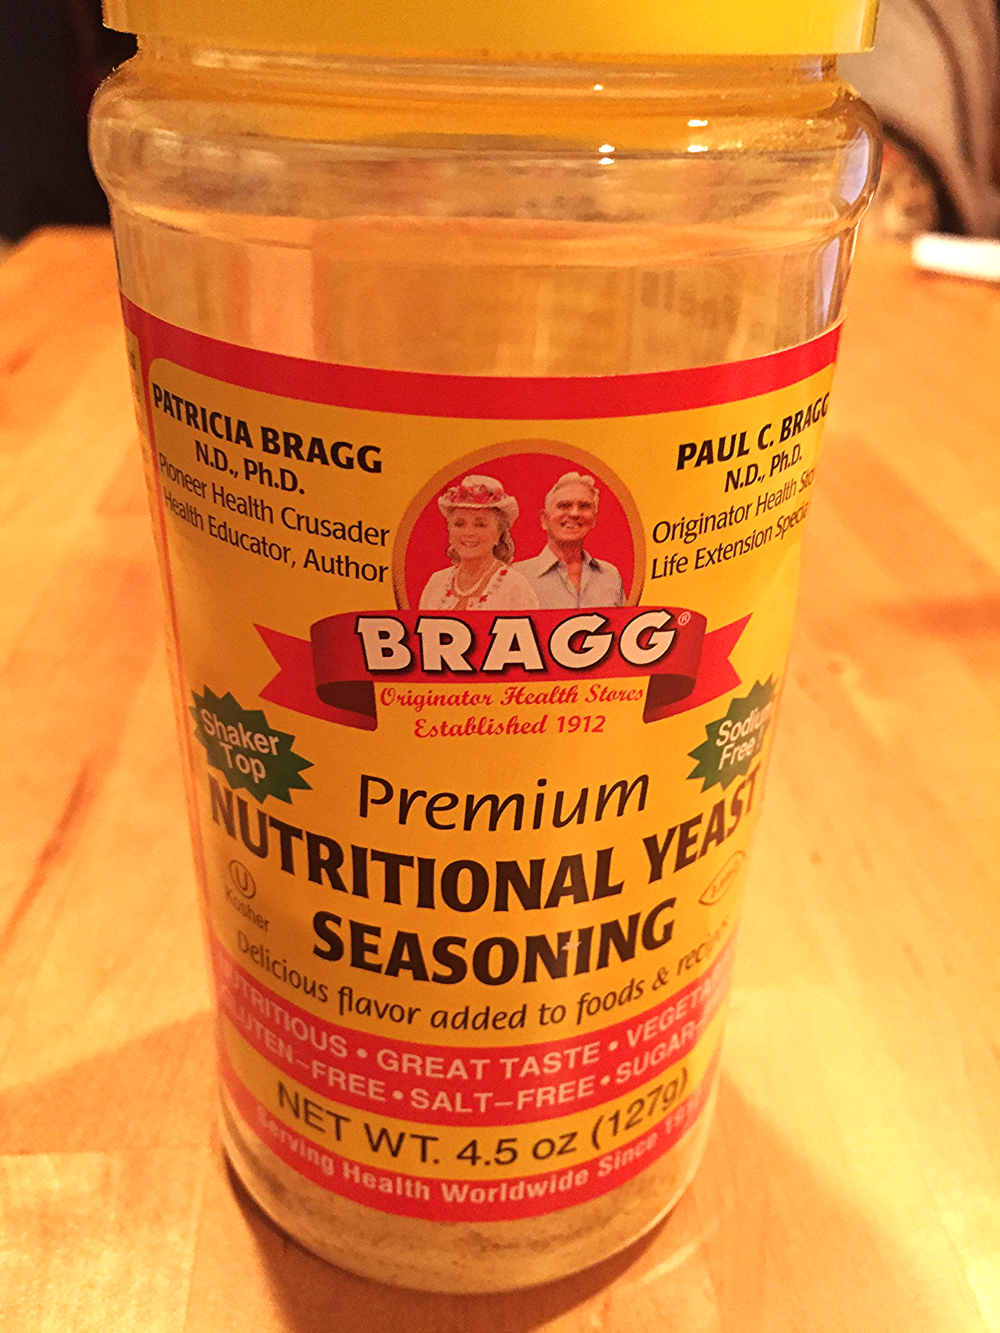 You can find Bragg Premium Nutritional Yeast Seasoning at Whole Foods and other health food stores